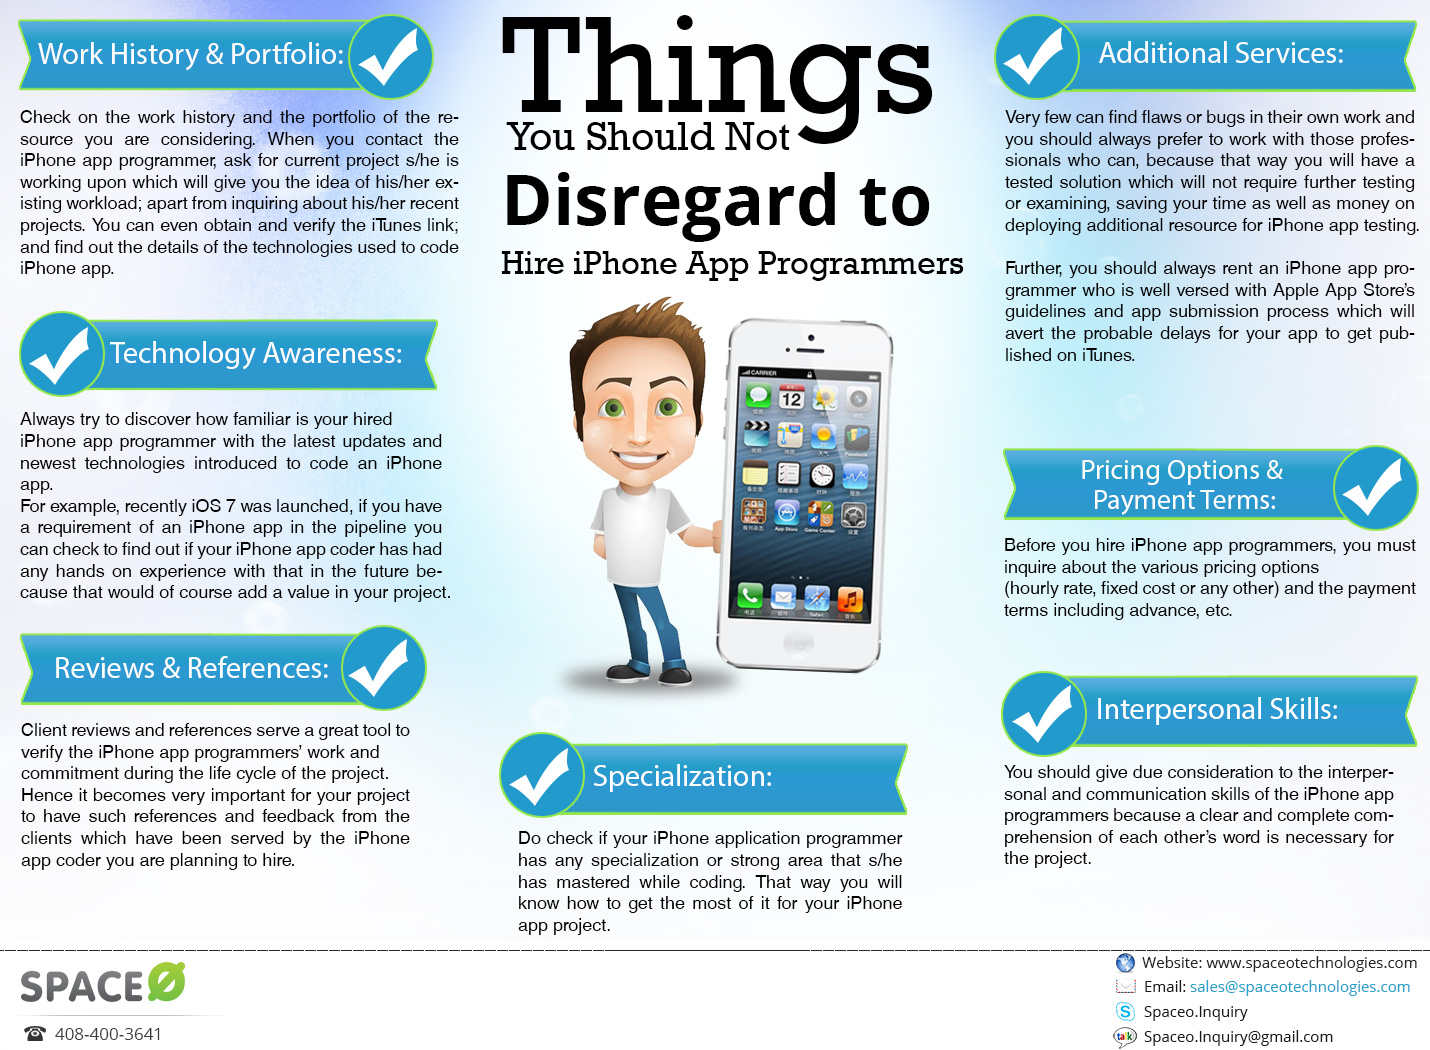 7 Things You Should Not Overlook While Hiring iPhone App Programmers